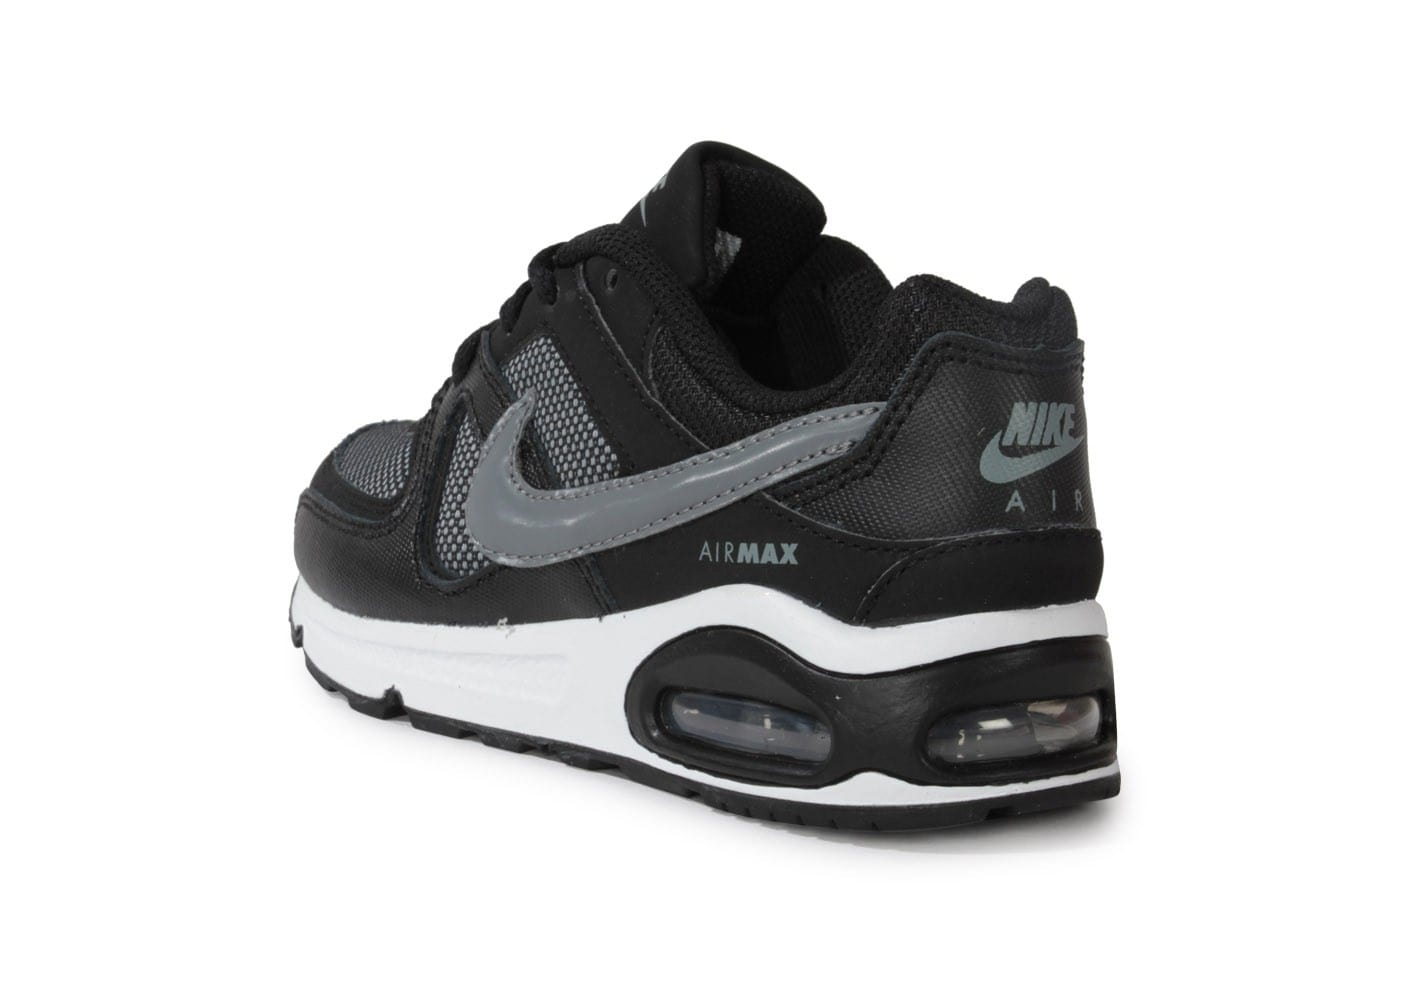 nike air max command enfant noire et grise chaussures chaussures chausport. Black Bedroom Furniture Sets. Home Design Ideas